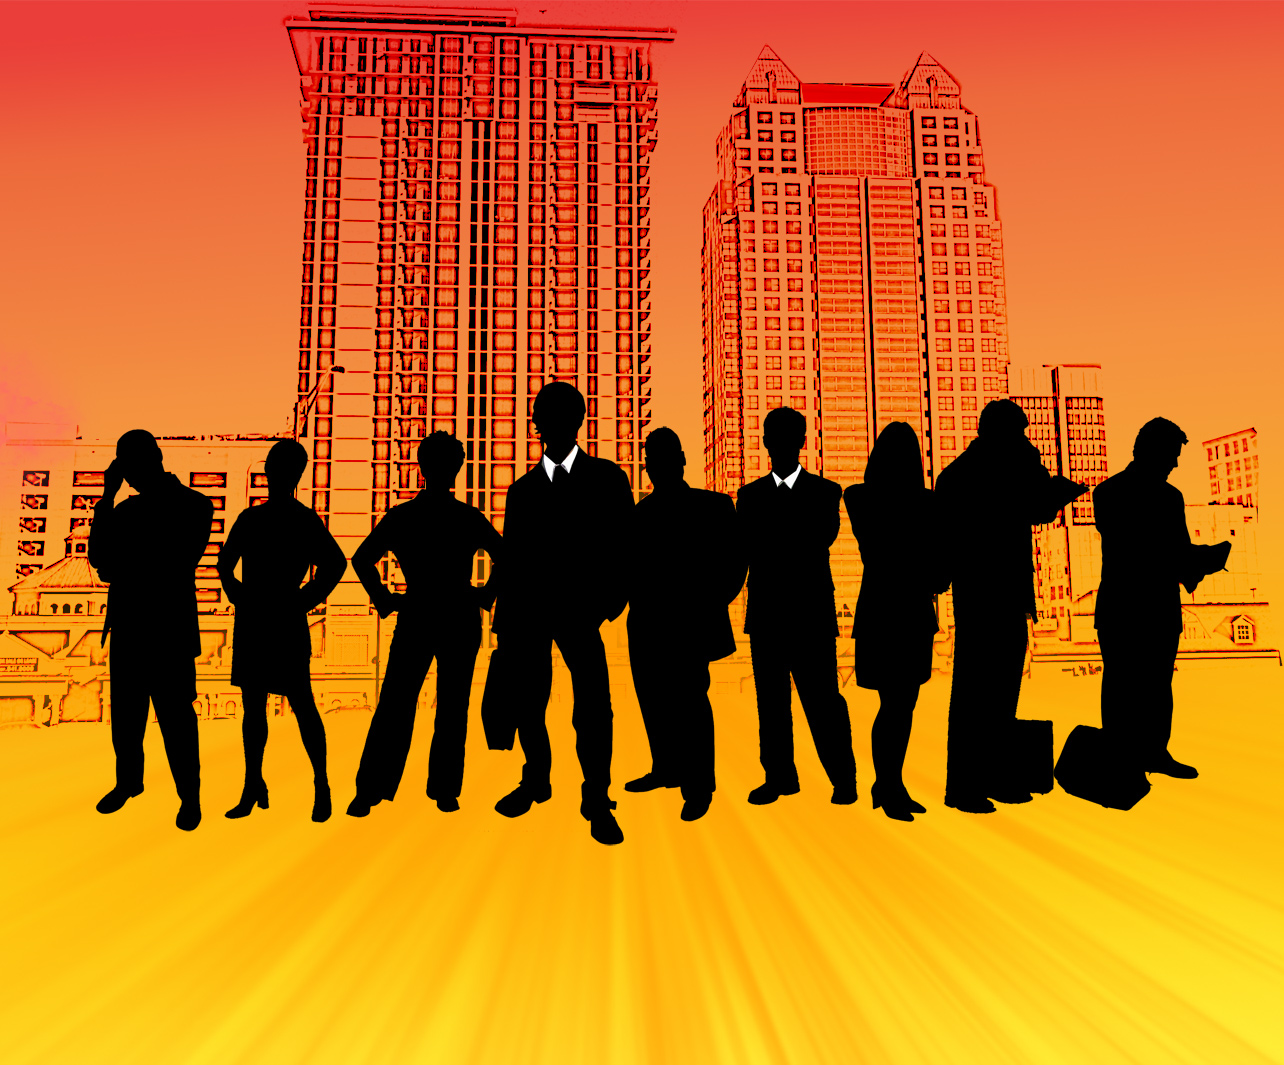 city people groups business